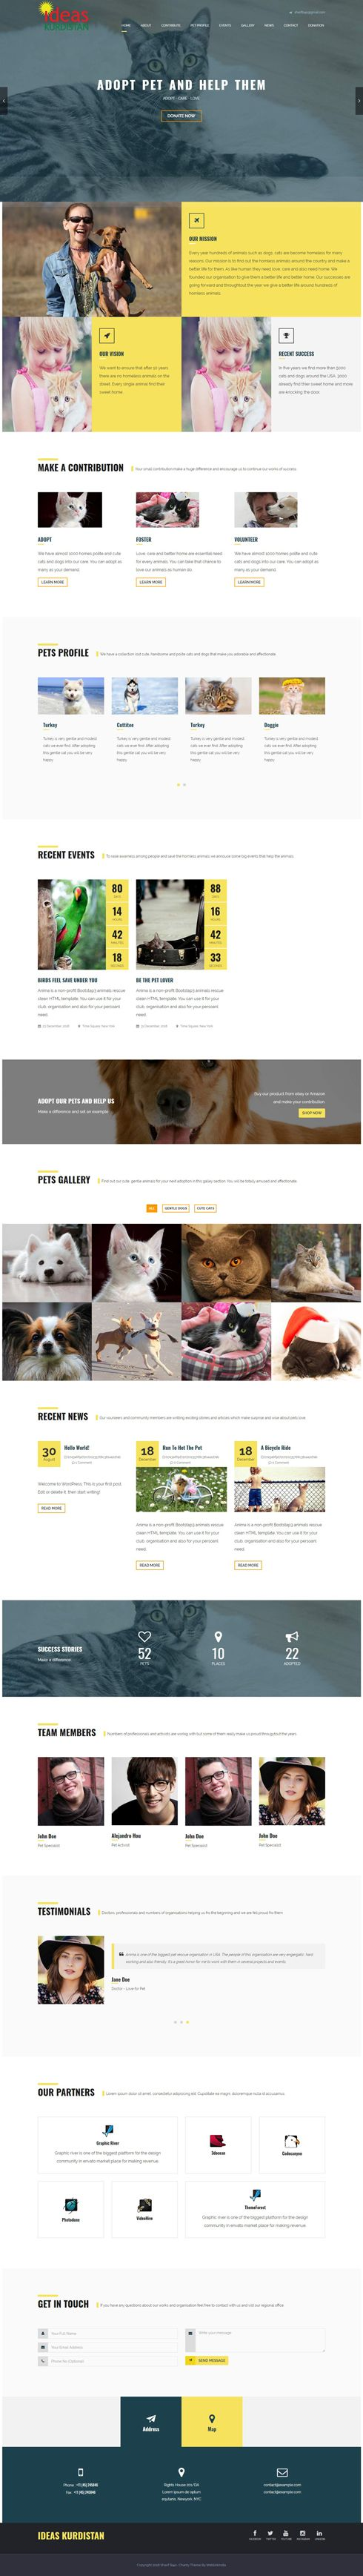 Sharif Bajo- Charity United States Web Design